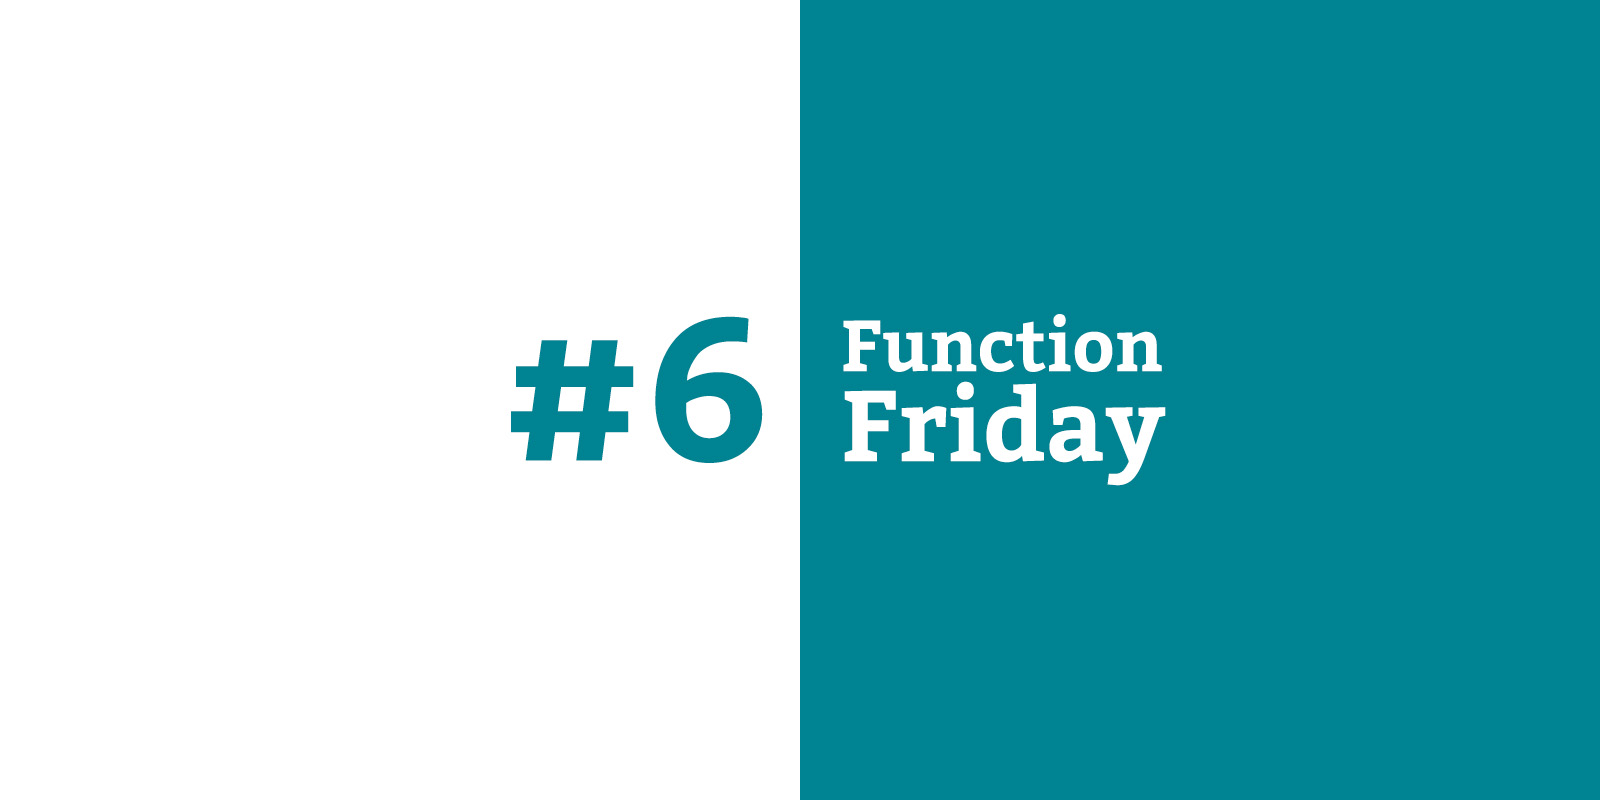 Function Friday #6